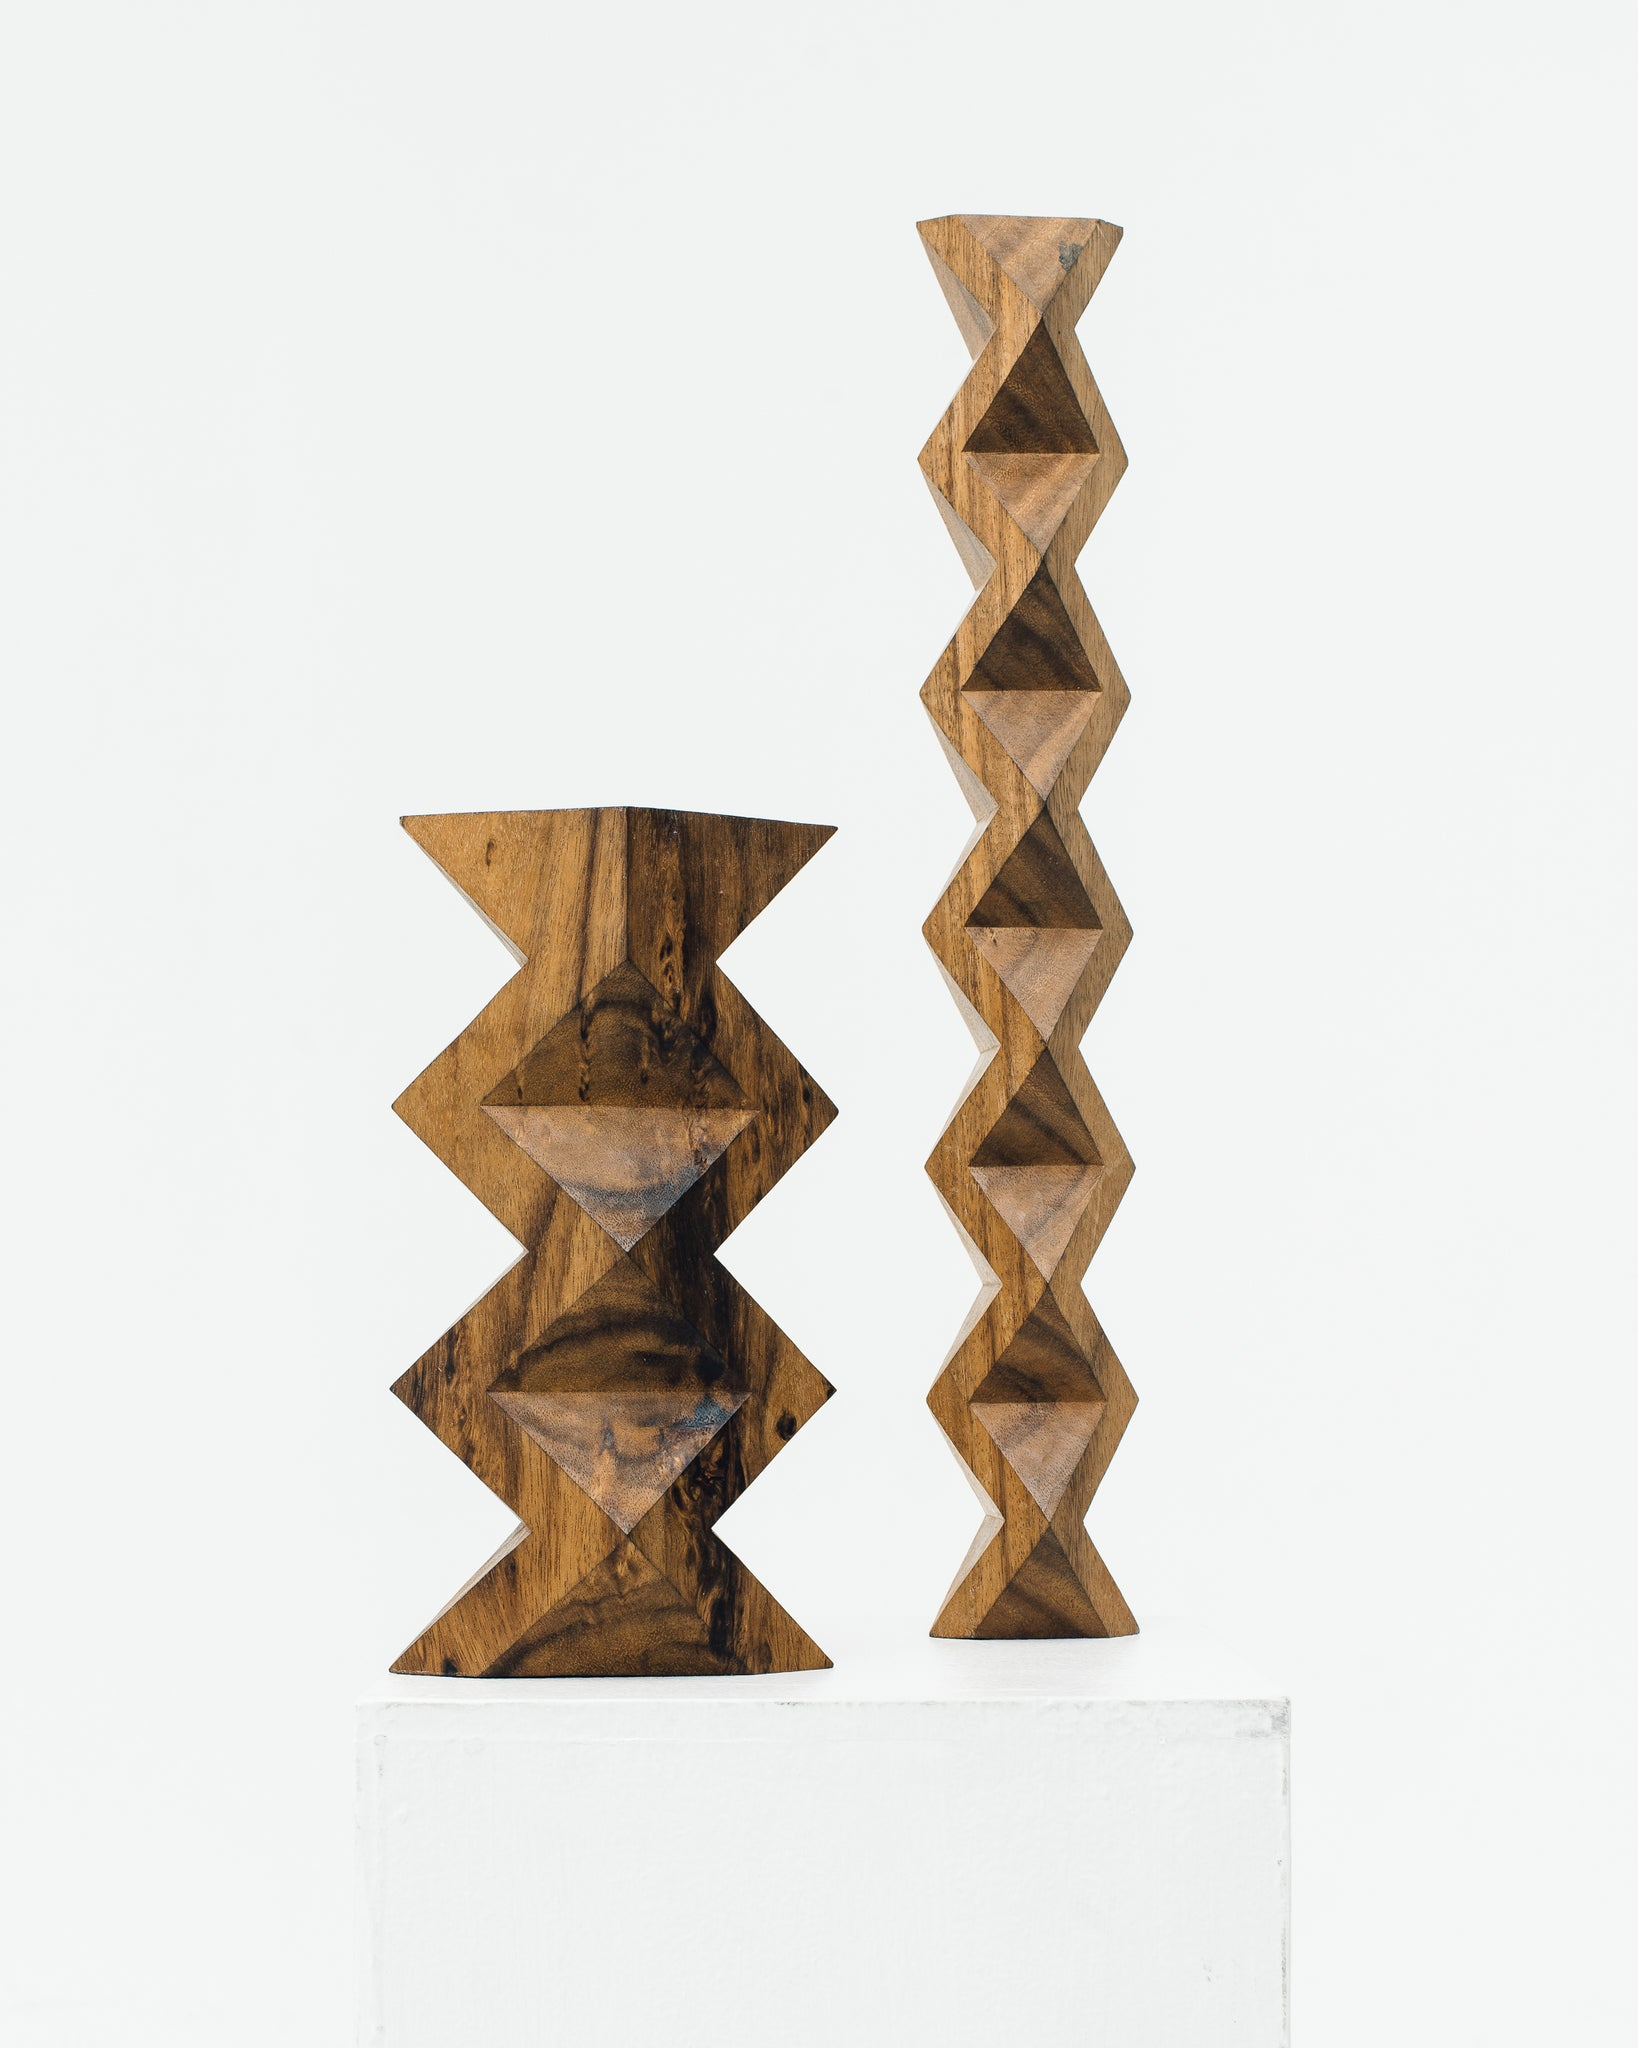 Aleph Geddis Wood Sculpture AG-1022